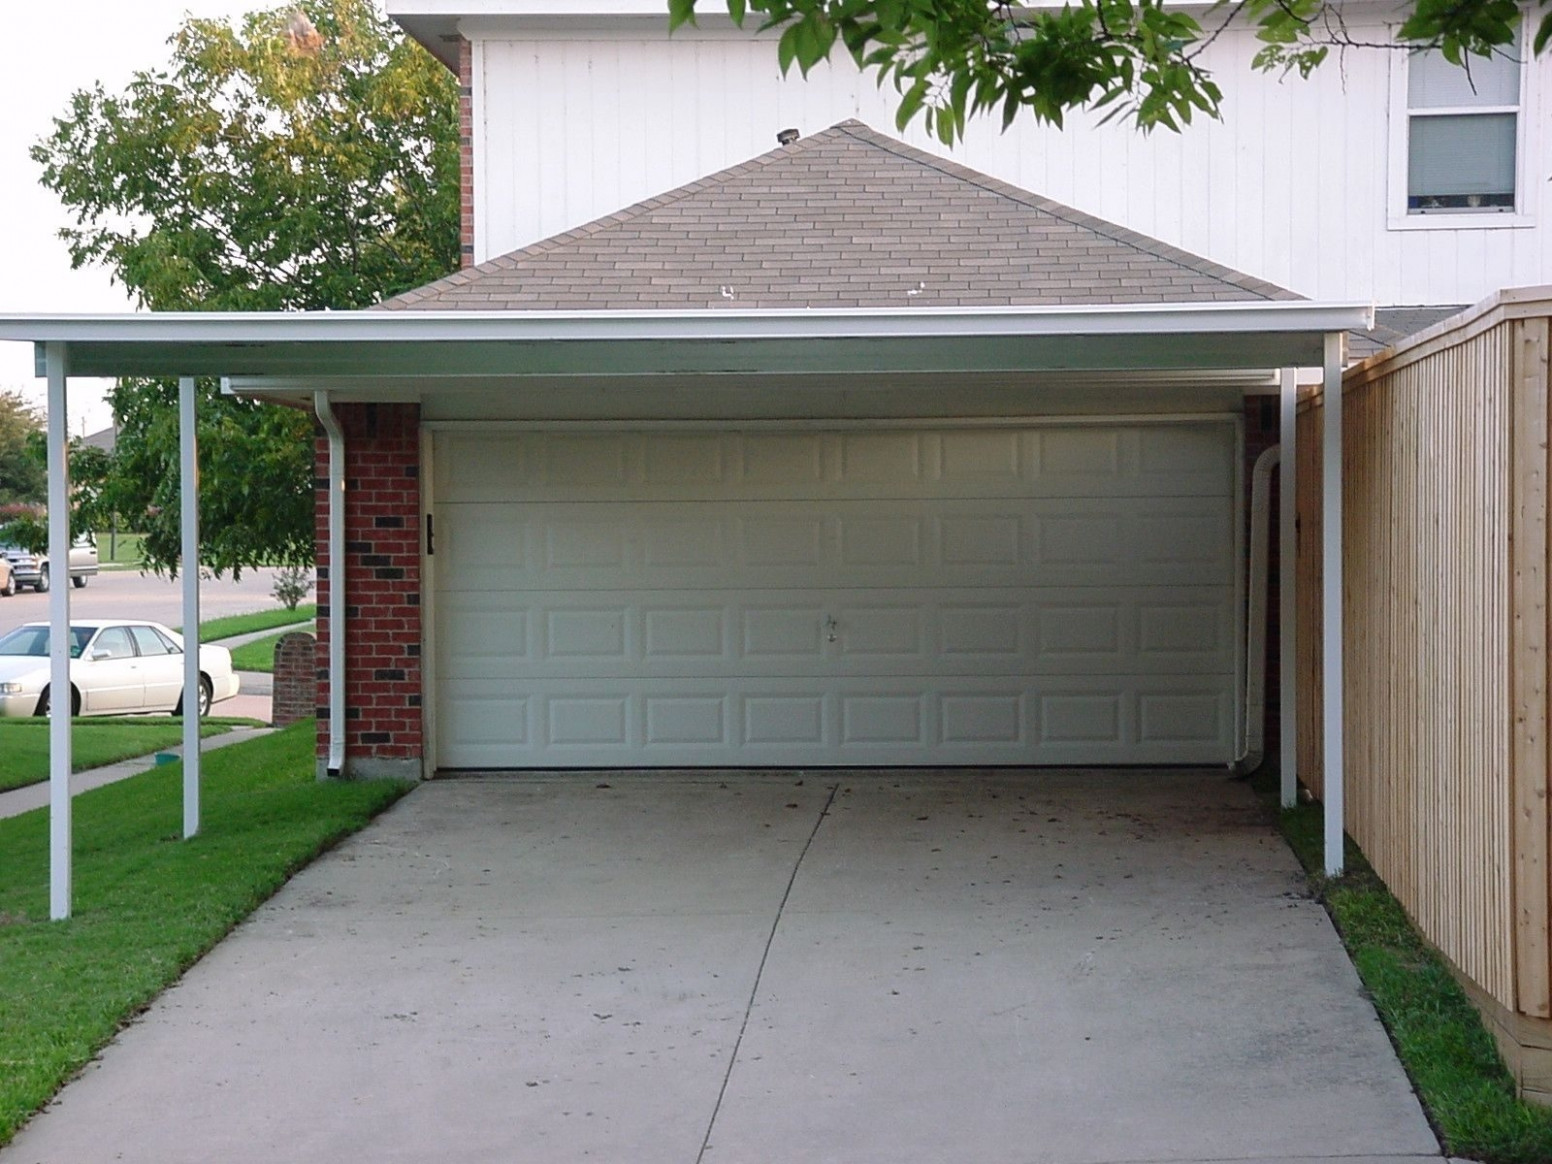 Double Carport Attached To House 11X11 Modern Home Patio ..